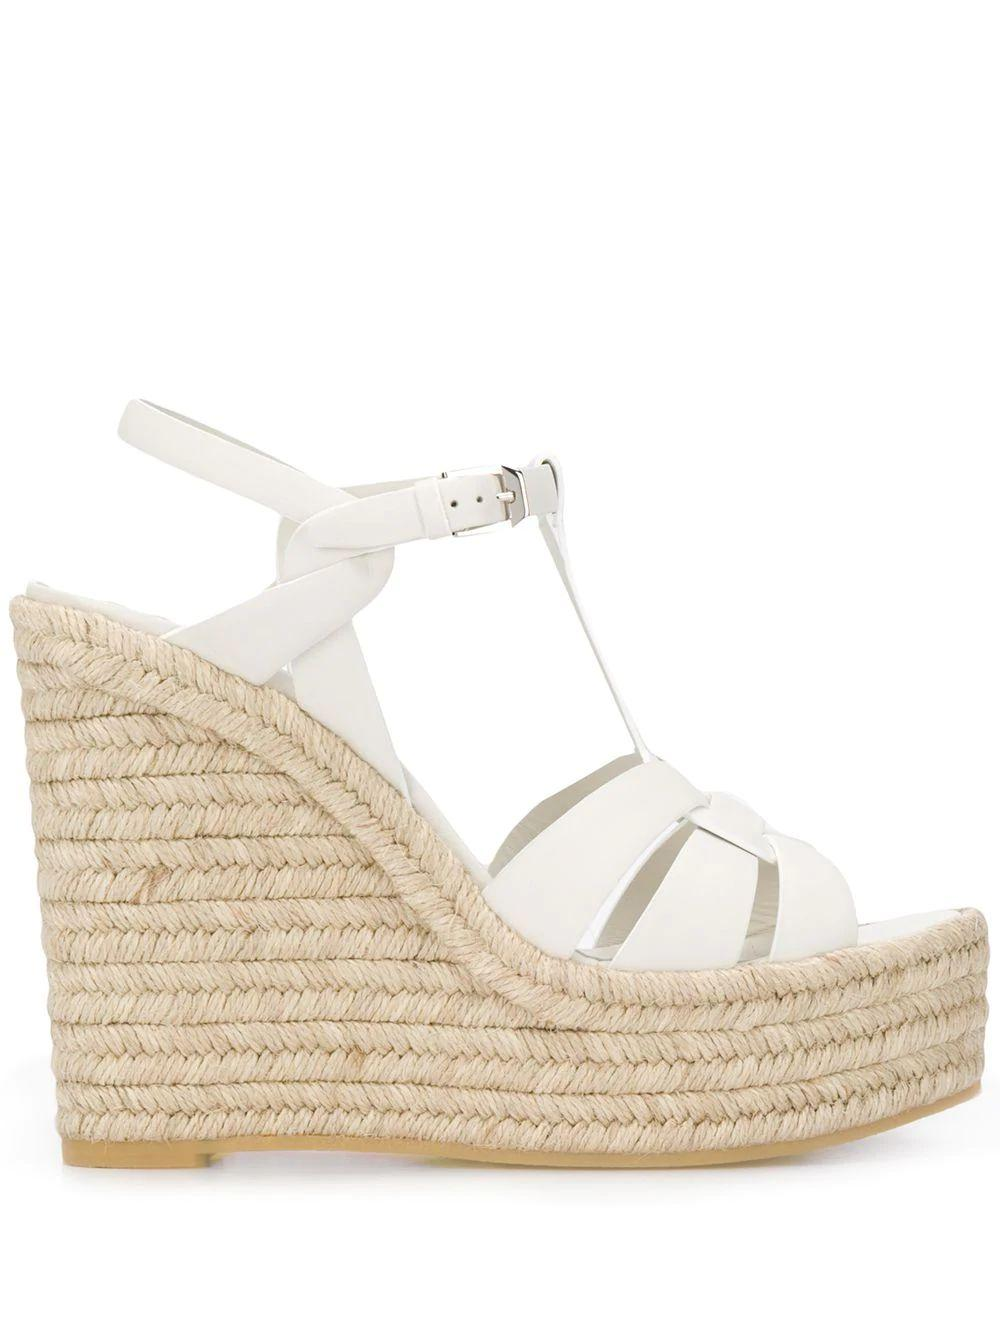 Tribute 85mm Espadrille Wedge Item # 611924BZC00